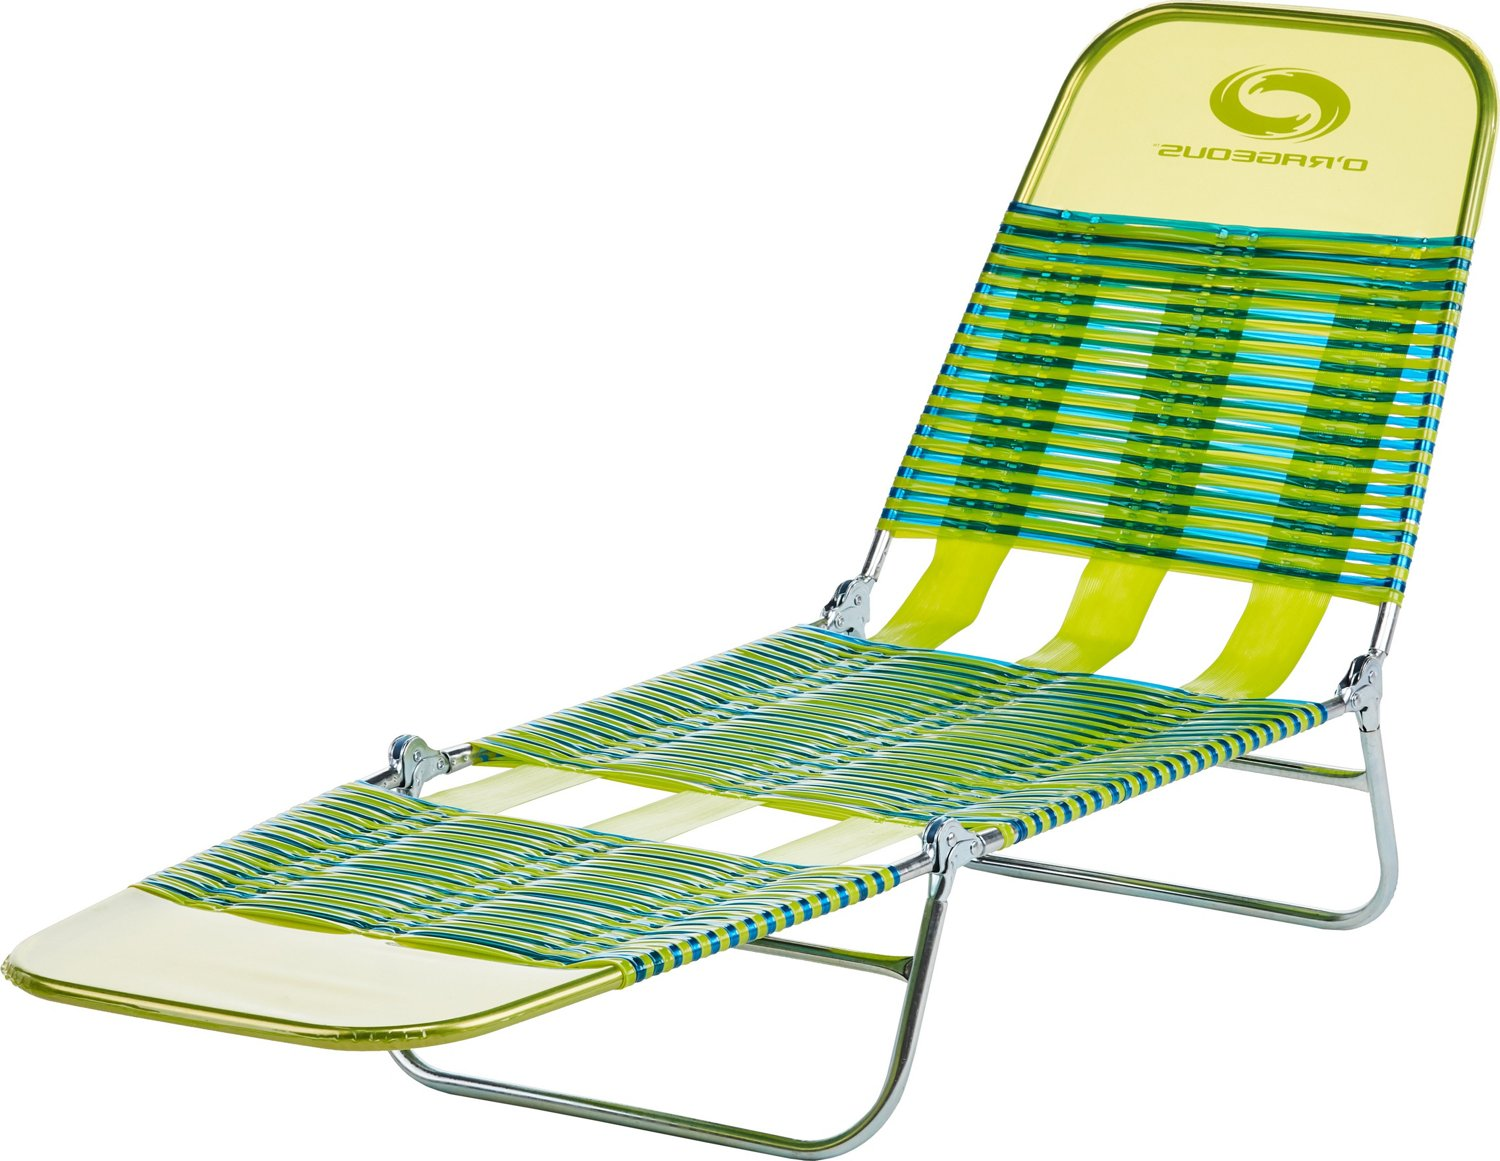 Incredible Orageous Vinyl Strap Lounger Gmtry Best Dining Table And Chair Ideas Images Gmtryco